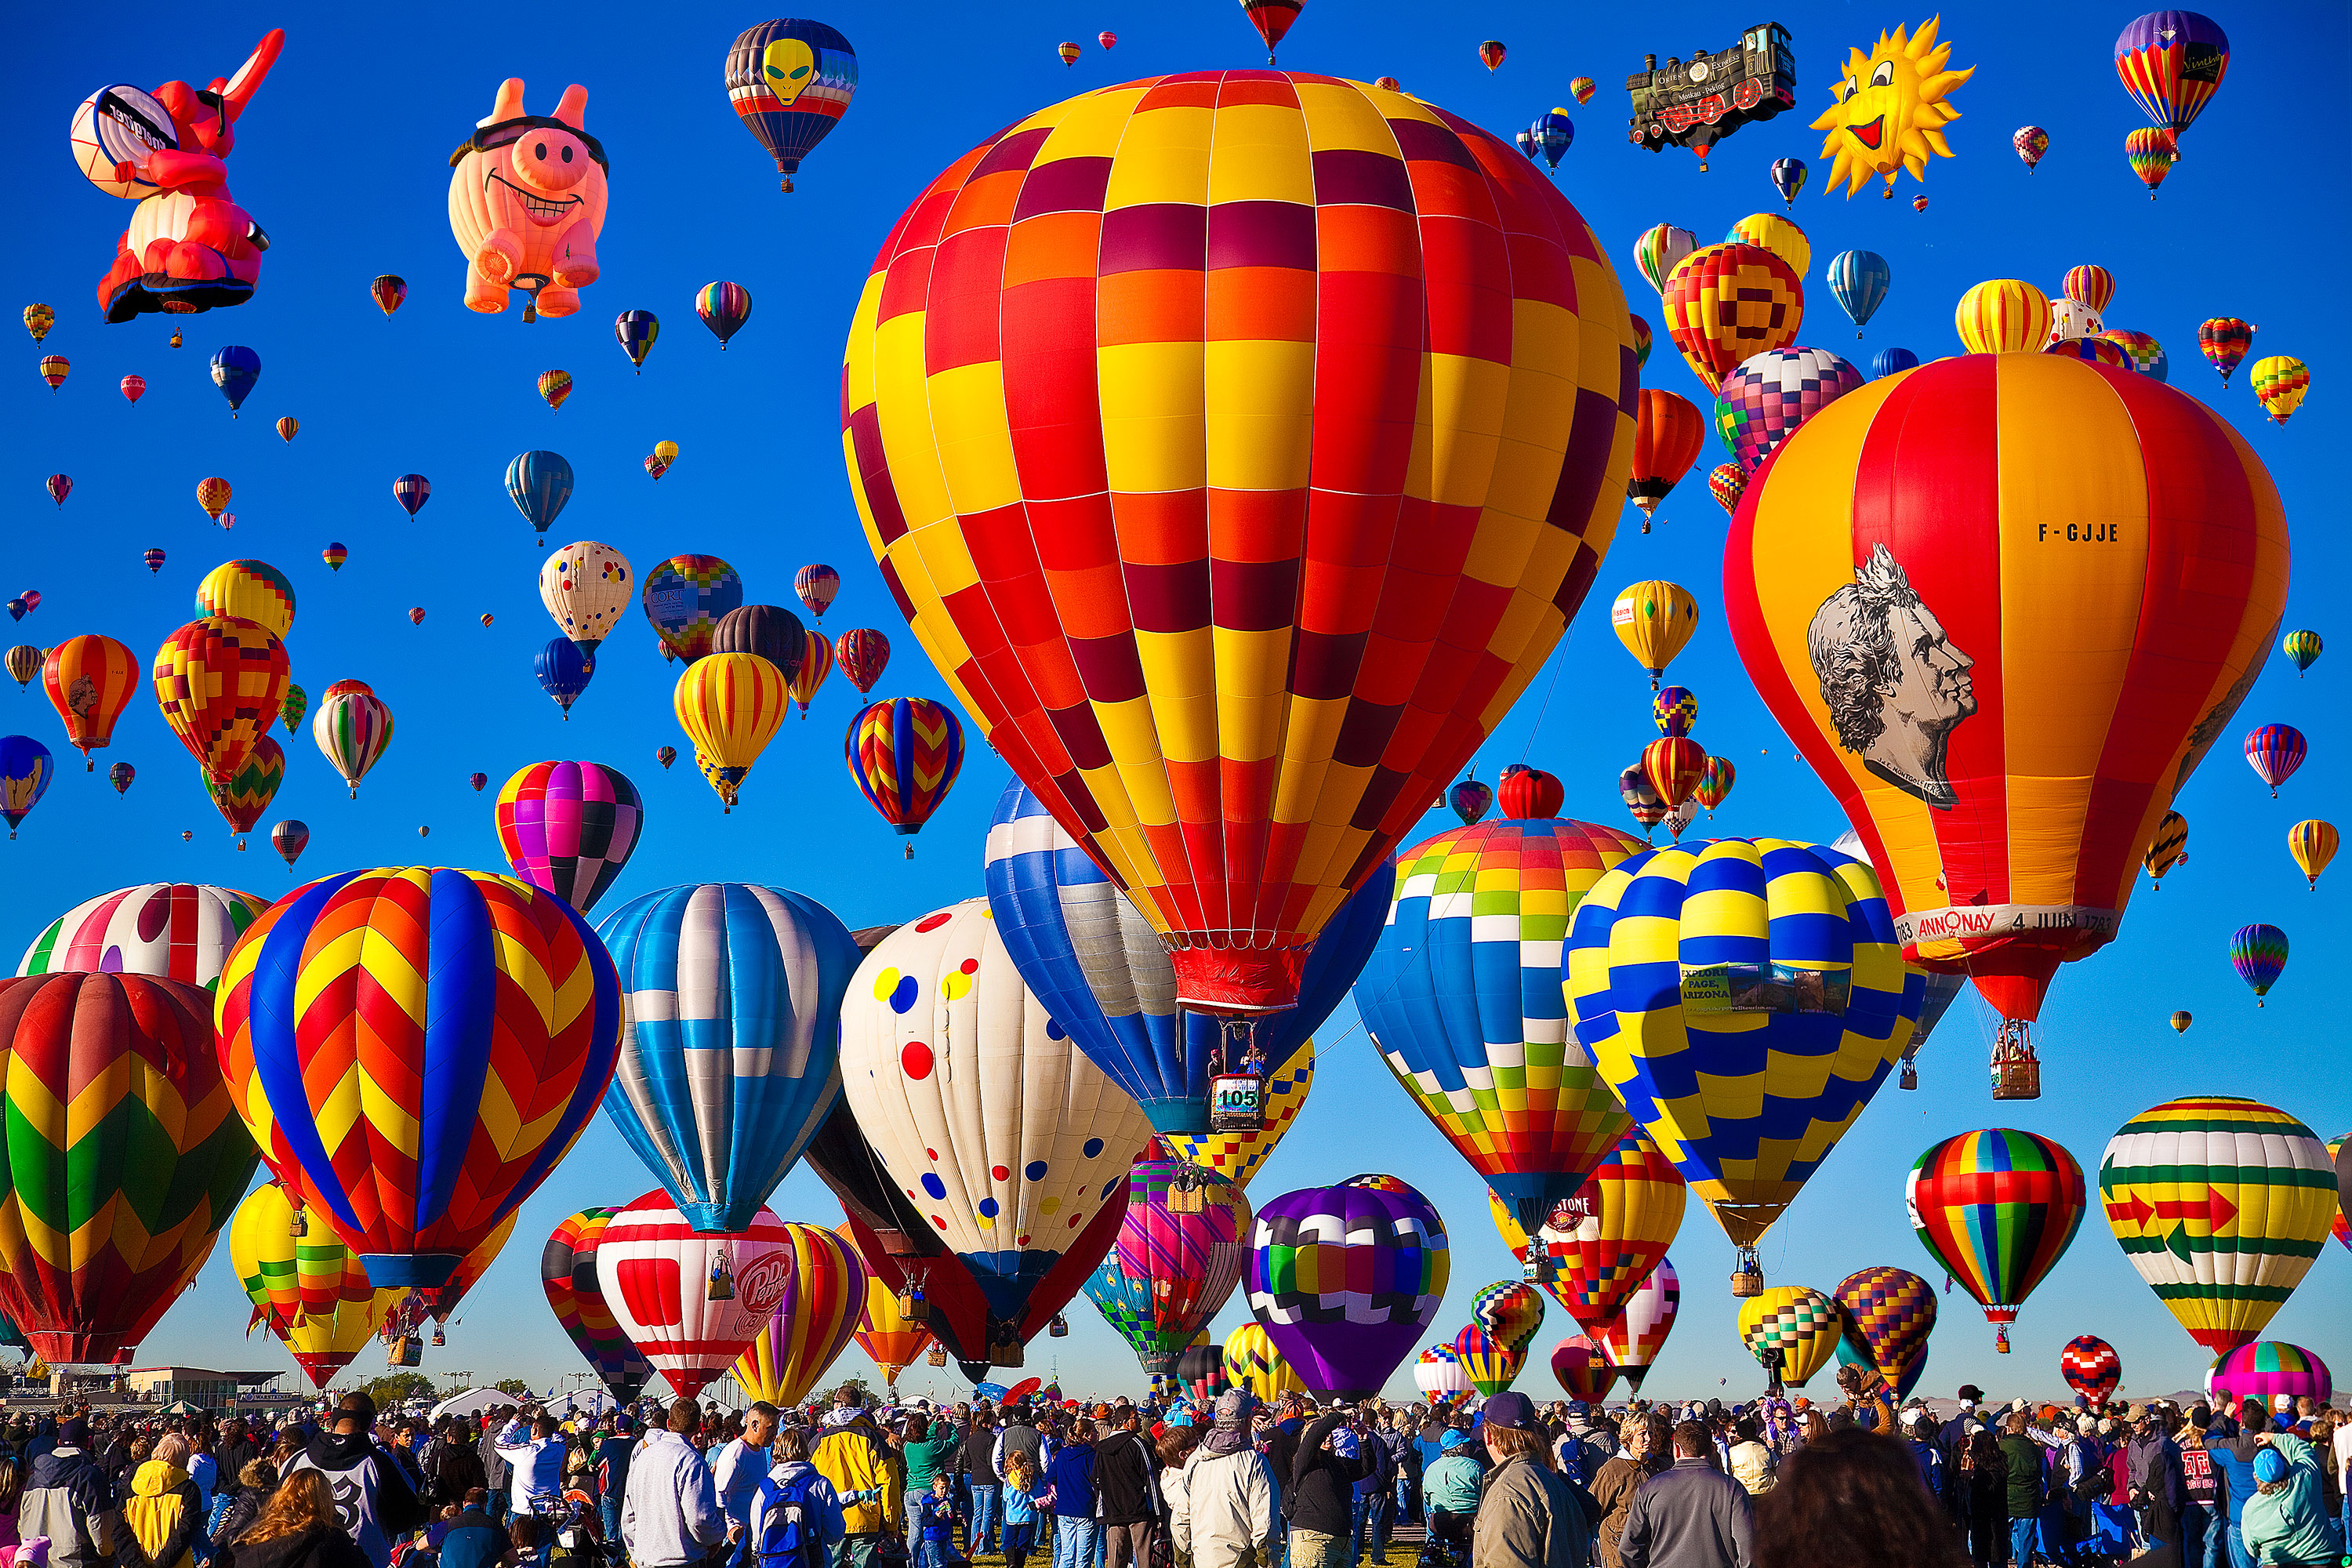 Watch Hundreds of Colorful Hot-Air Balloons Fill the Sky